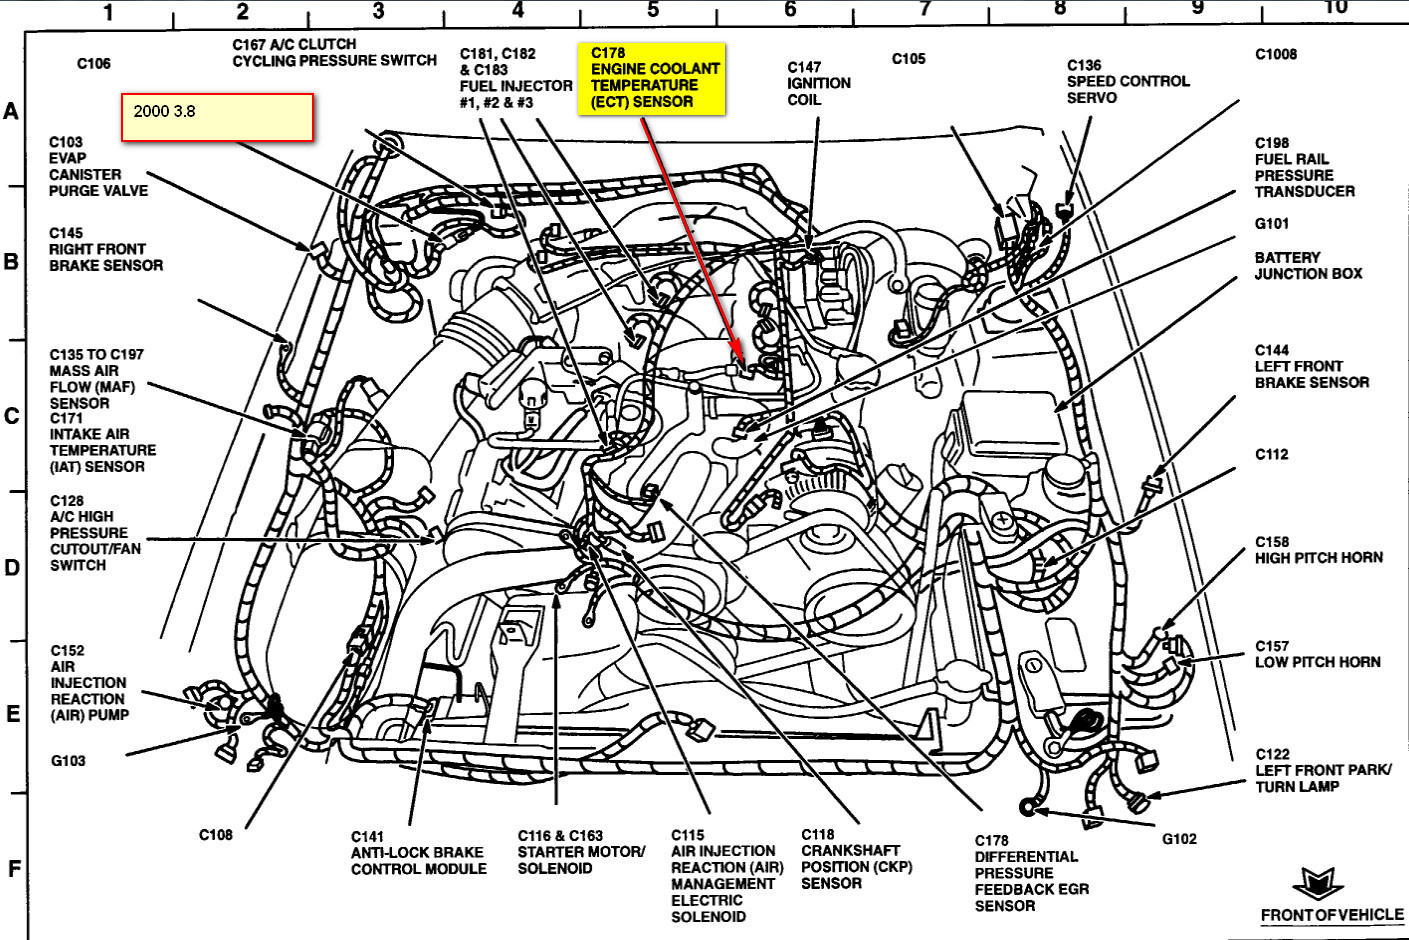 97 Lincoln Town Car Fuse Box Diagram also My horn keeps going off intermitently how do I stop it likewise 2004 Ford Ranger Fuse Diagram furthermore 1995 Accord Lx Windows Not Working 2984590 additionally Toyota Camry Under Hood Fuse Box. on 1995 honda accord under hood fuse box